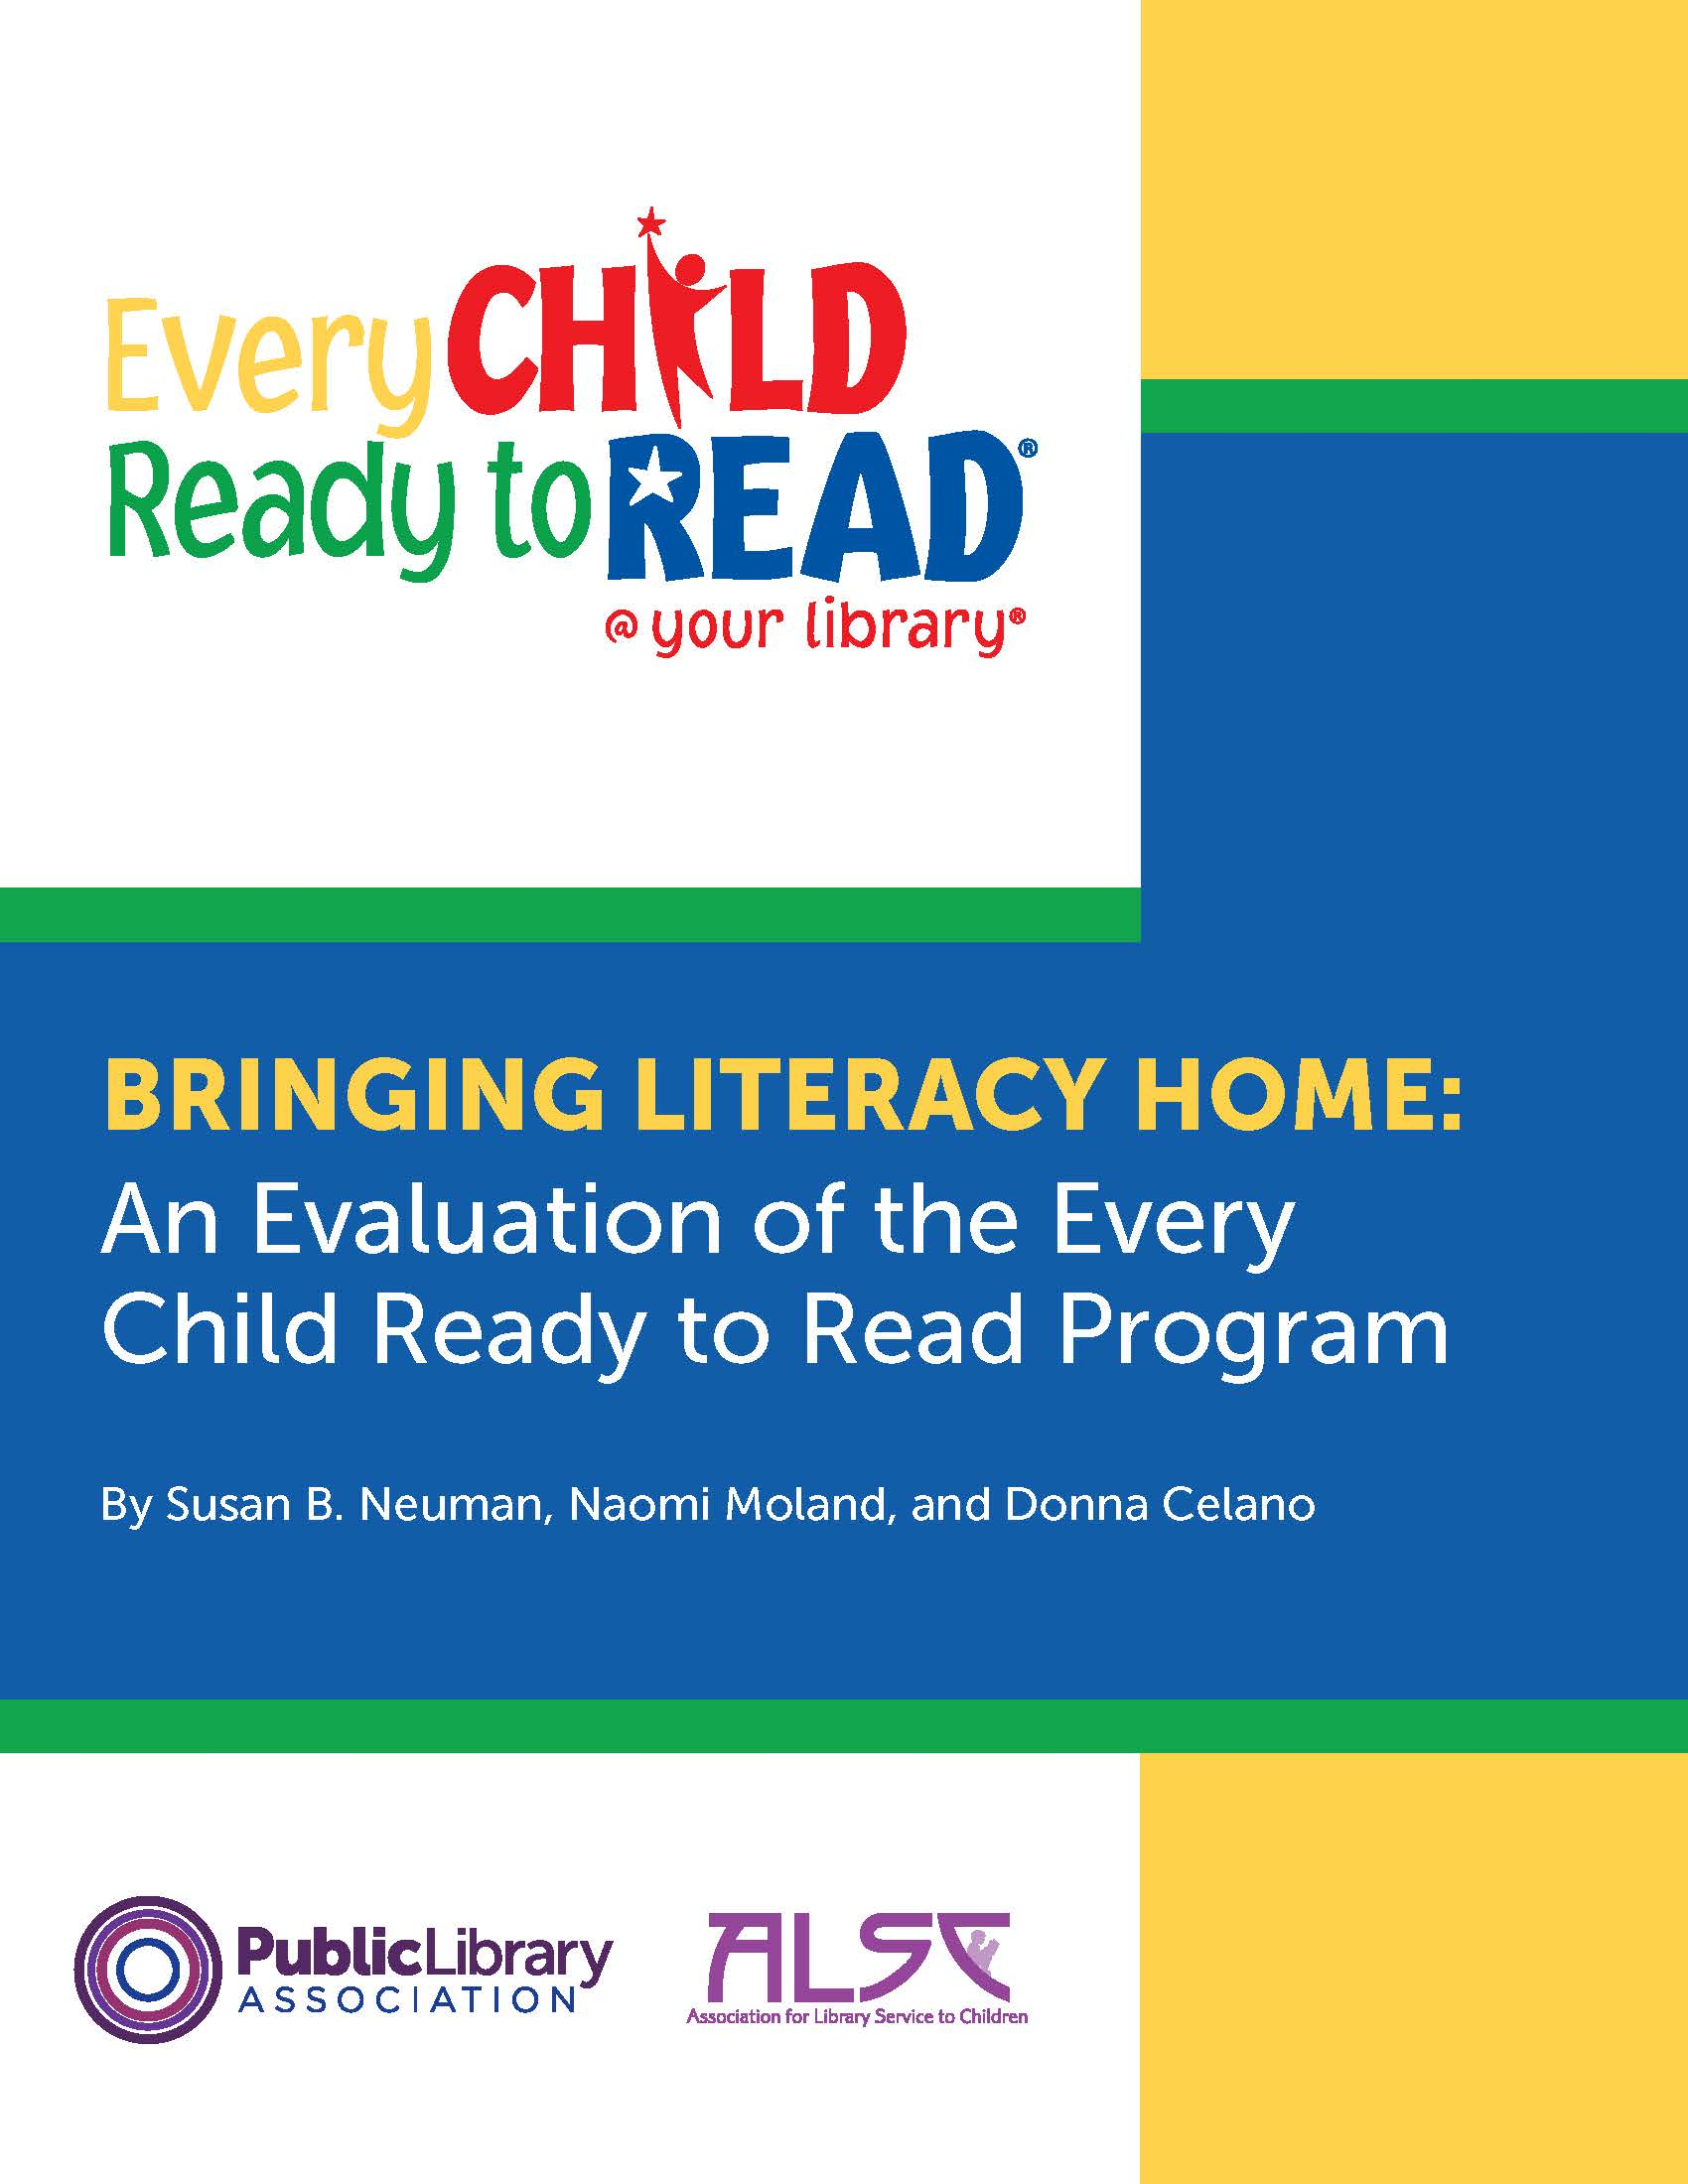 New Research Finds Every Child Ready To Read Curriculum Leads To